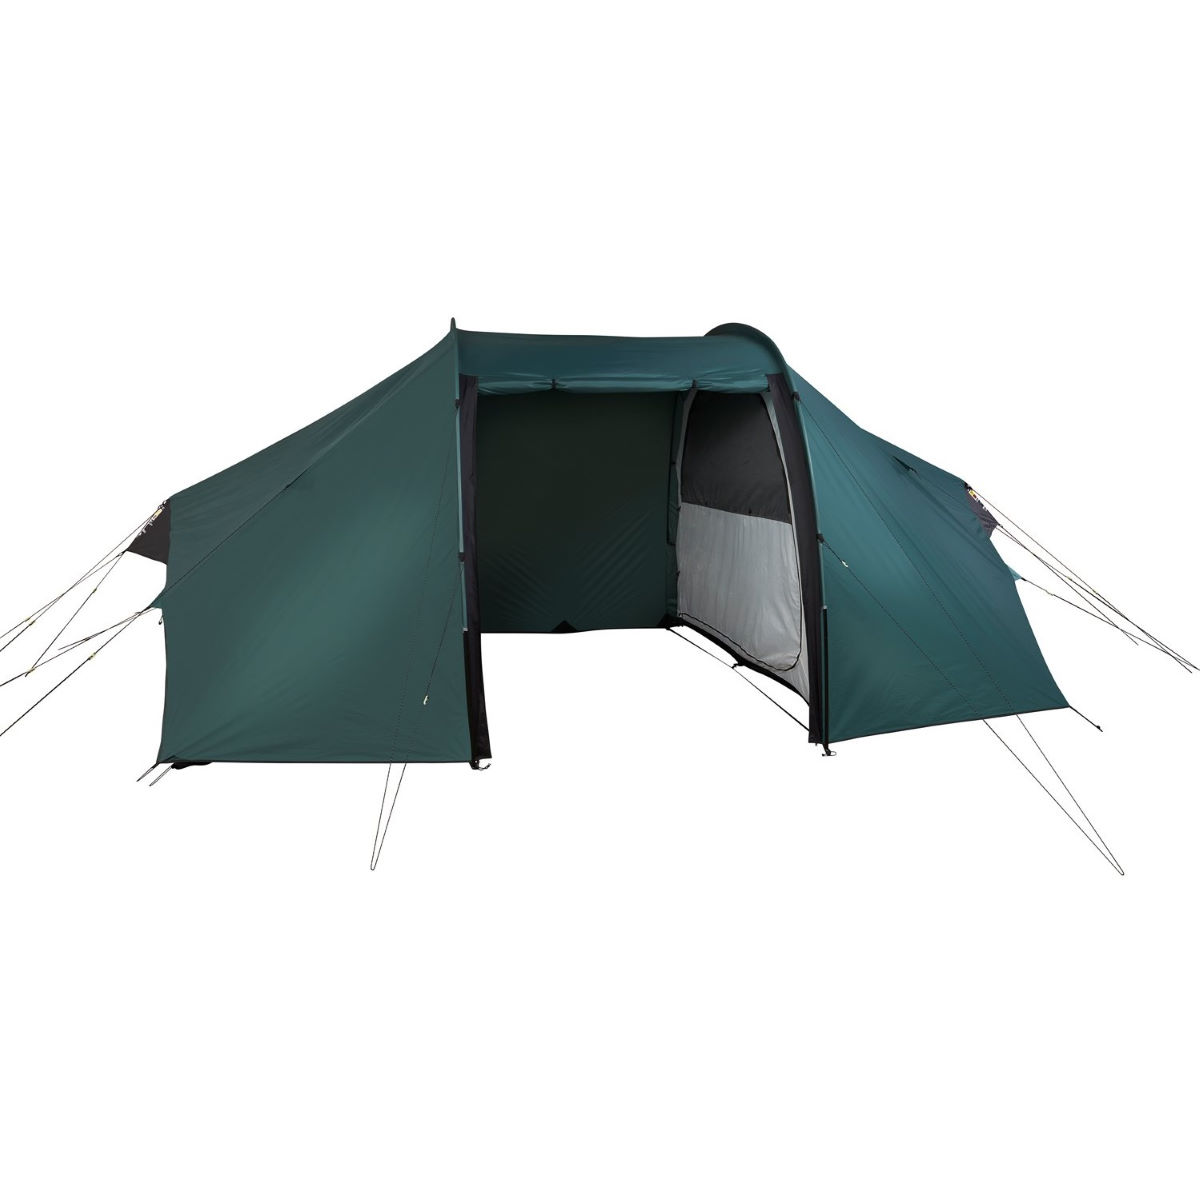 Wild Country Zephyros 4 Living Tent   Tents